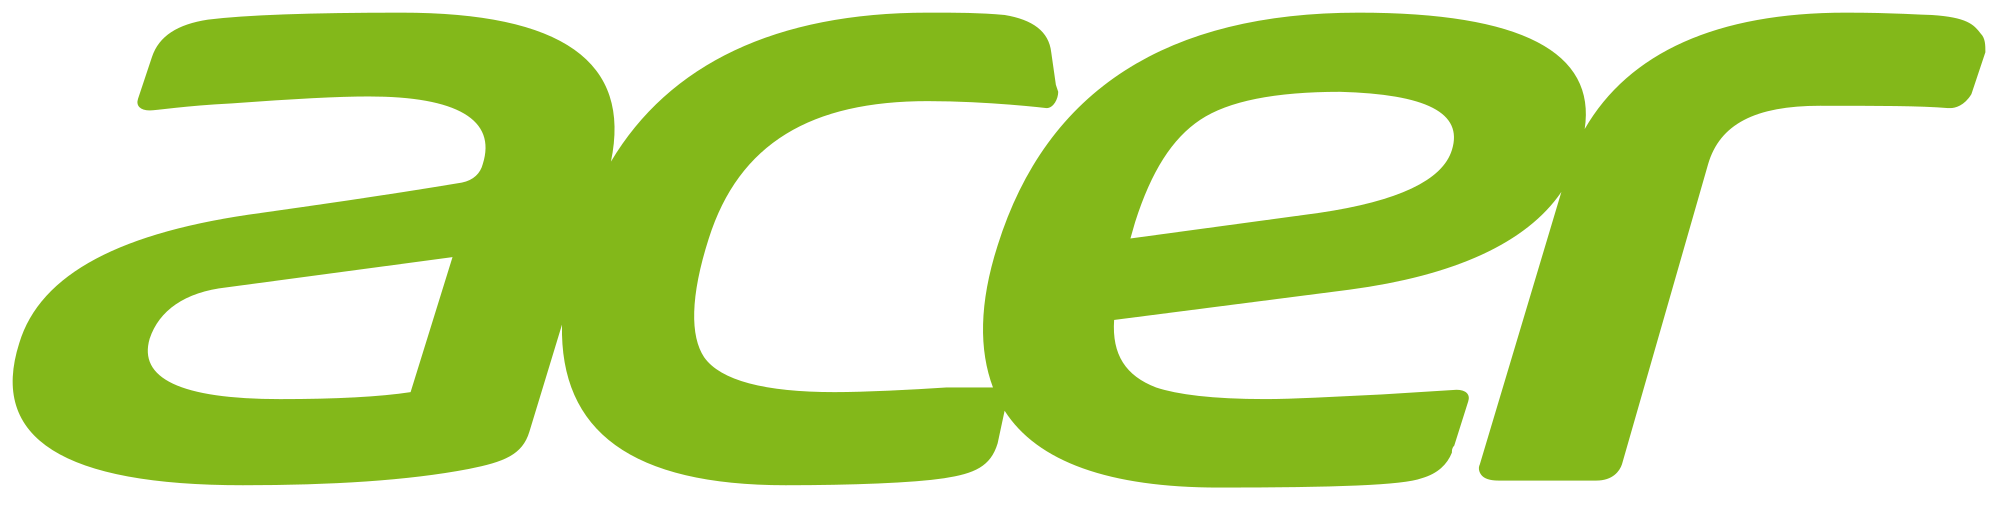 Acer Logo - File:Acer 2011.svg - Wikimedia Commons